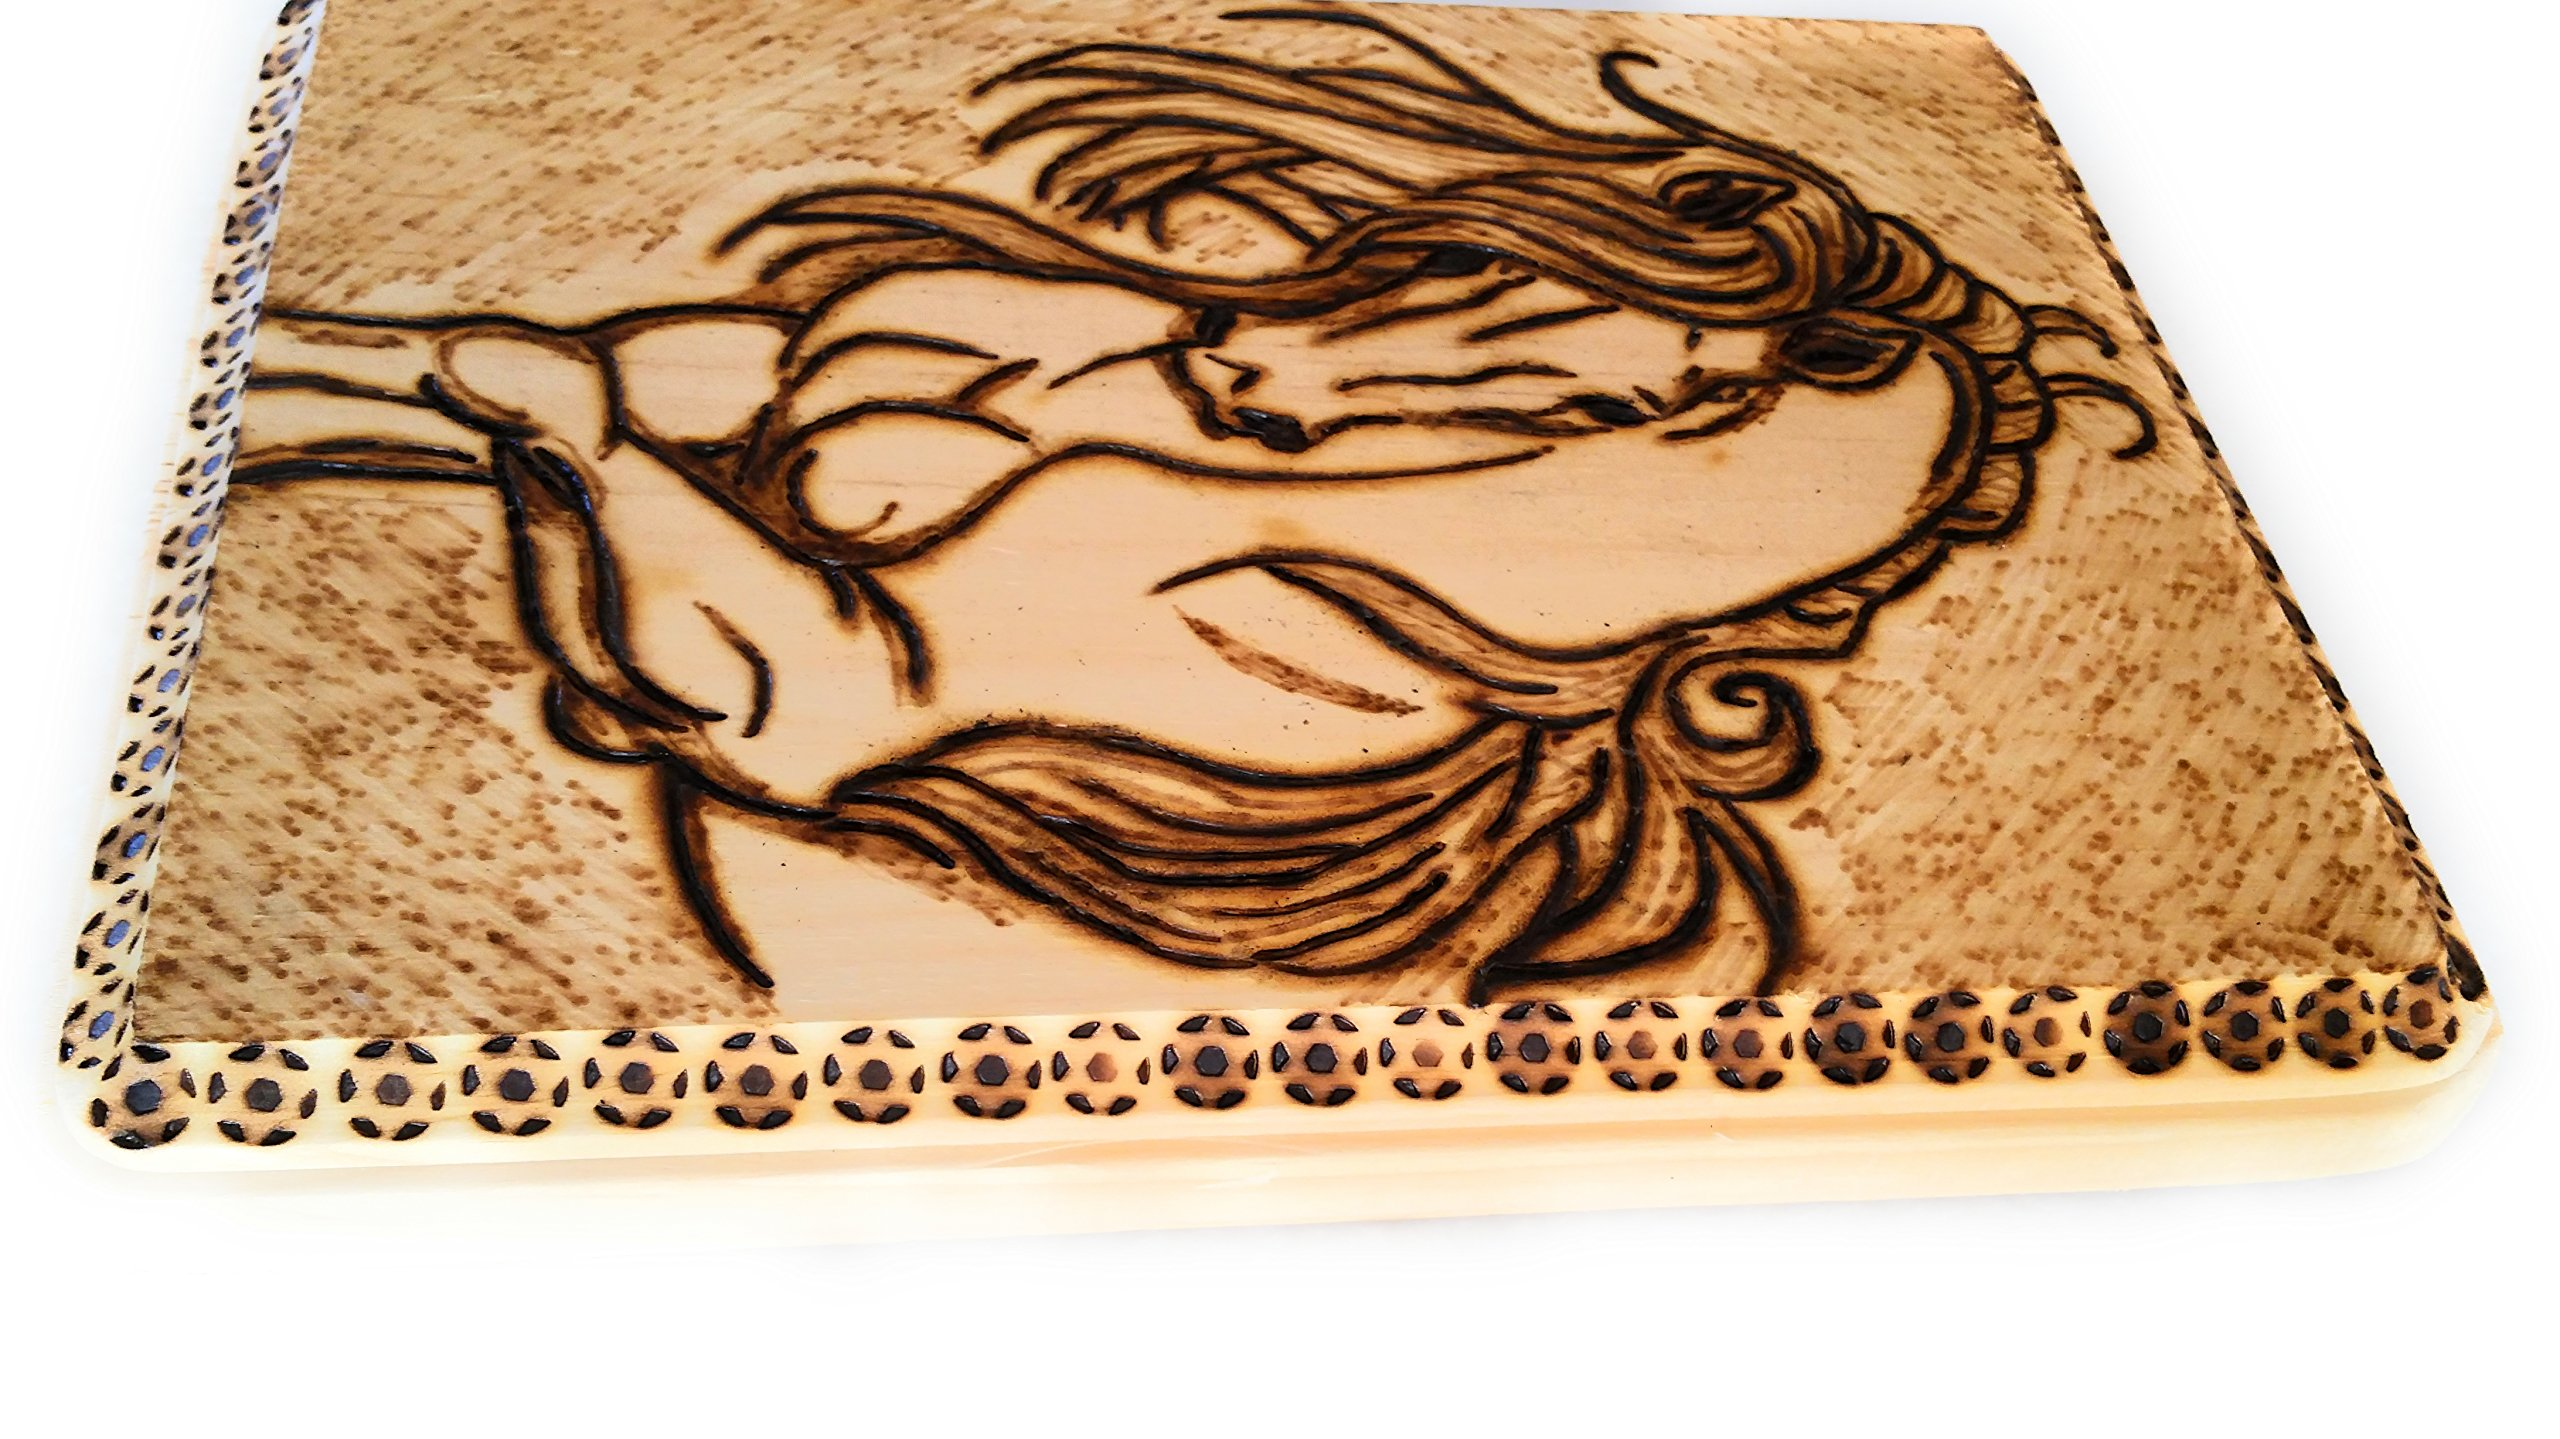 Home Decor Wood Burned Wall Hanging by Cimber's Home Decor+More (Image #4)